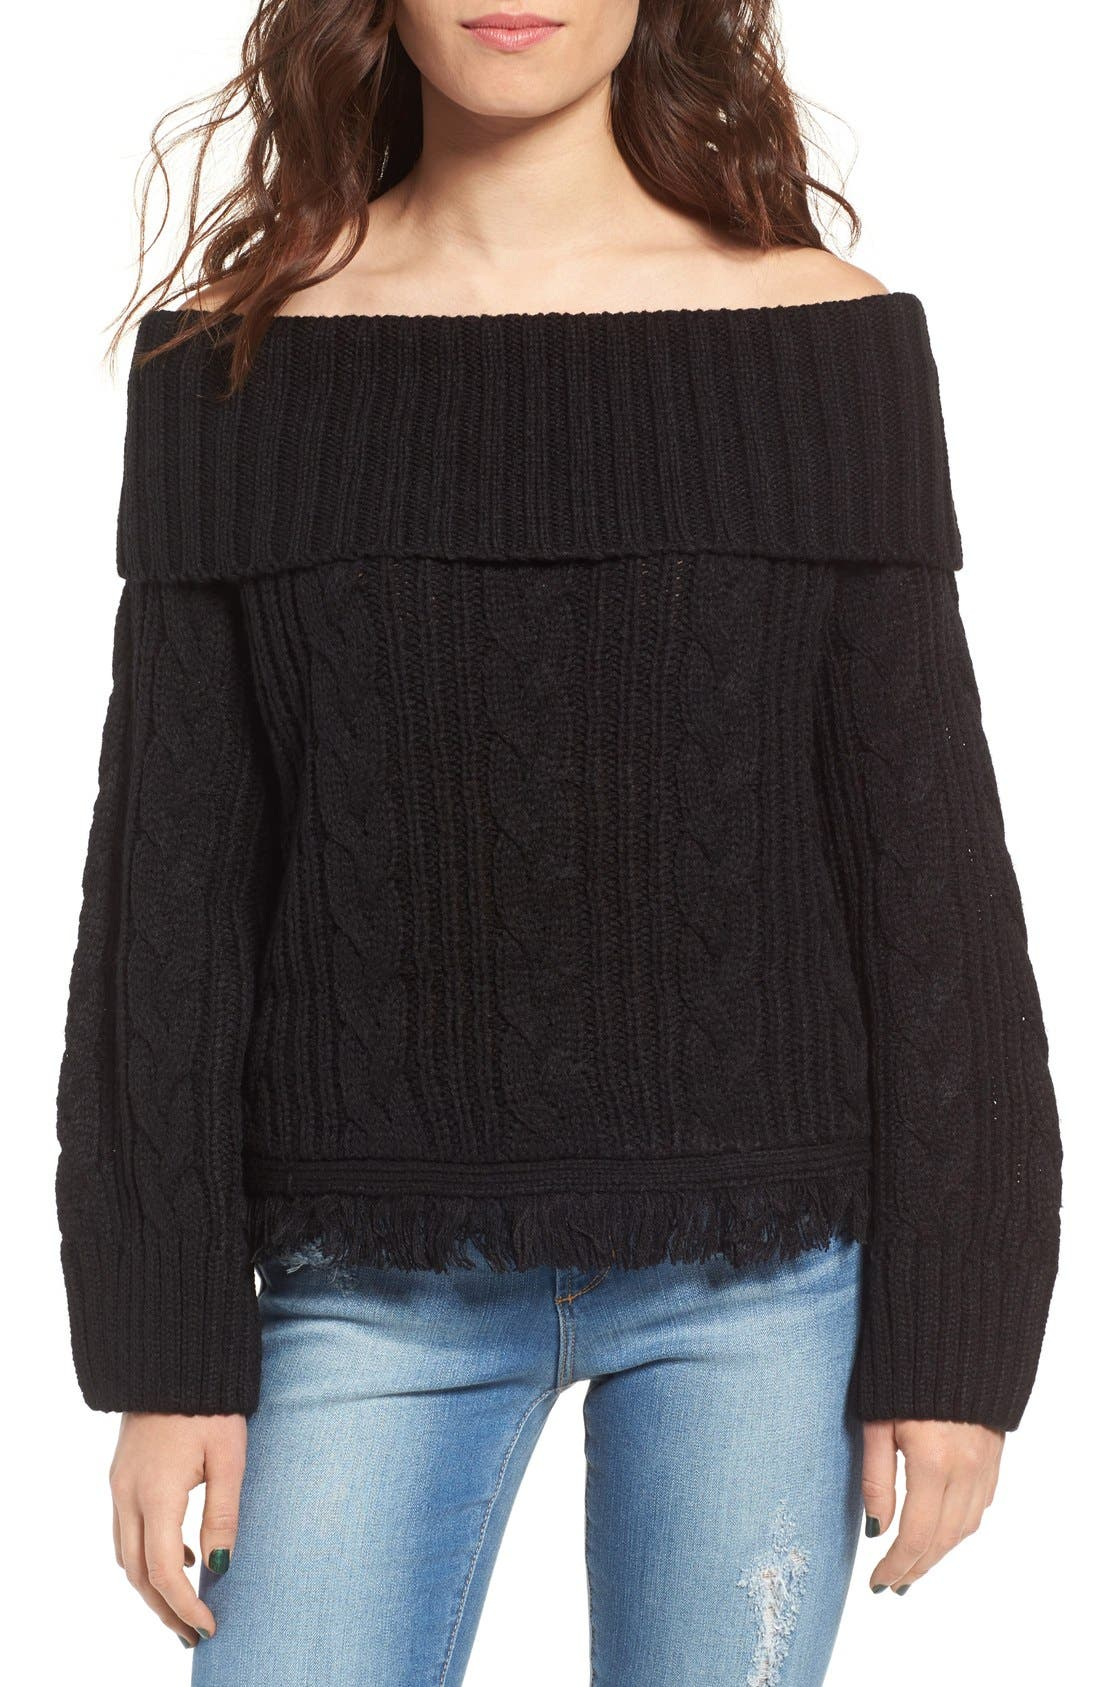 Alternate Image 1 Selected - MOON RIVER Off the Shoulder Sweater